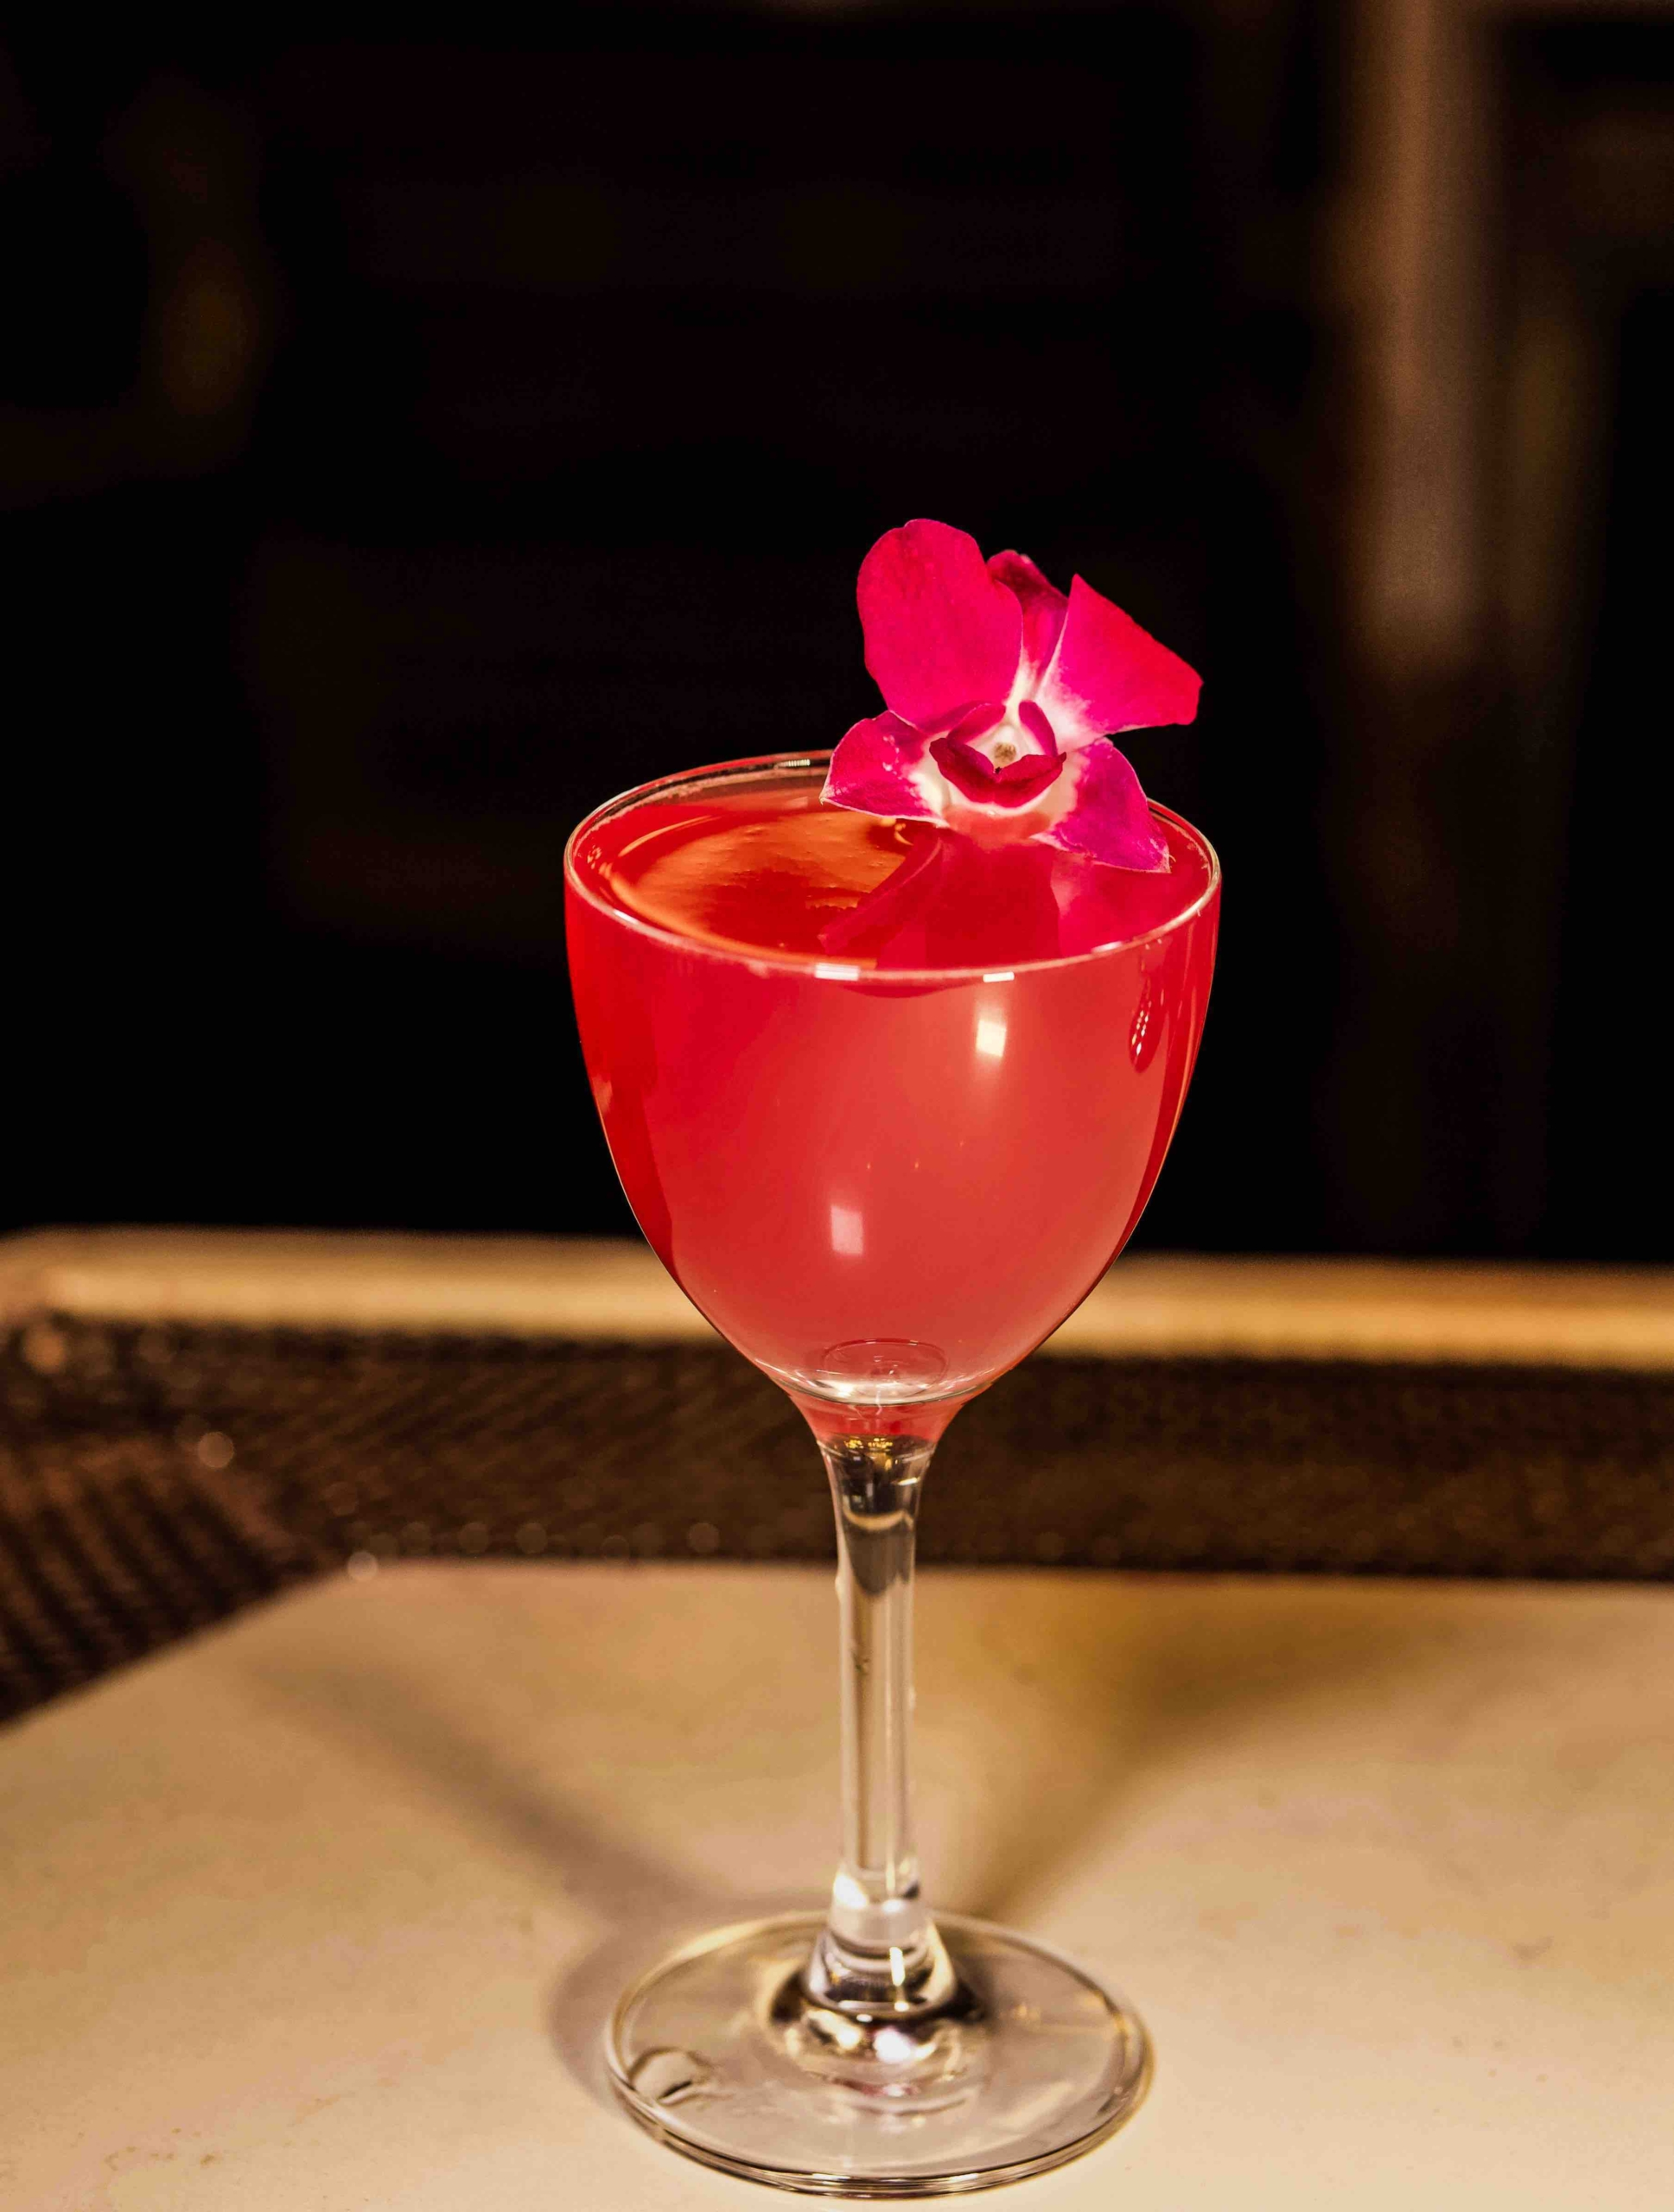 13 Delicious Rose-Colored Cocktails To Celebrate Valentine's Day